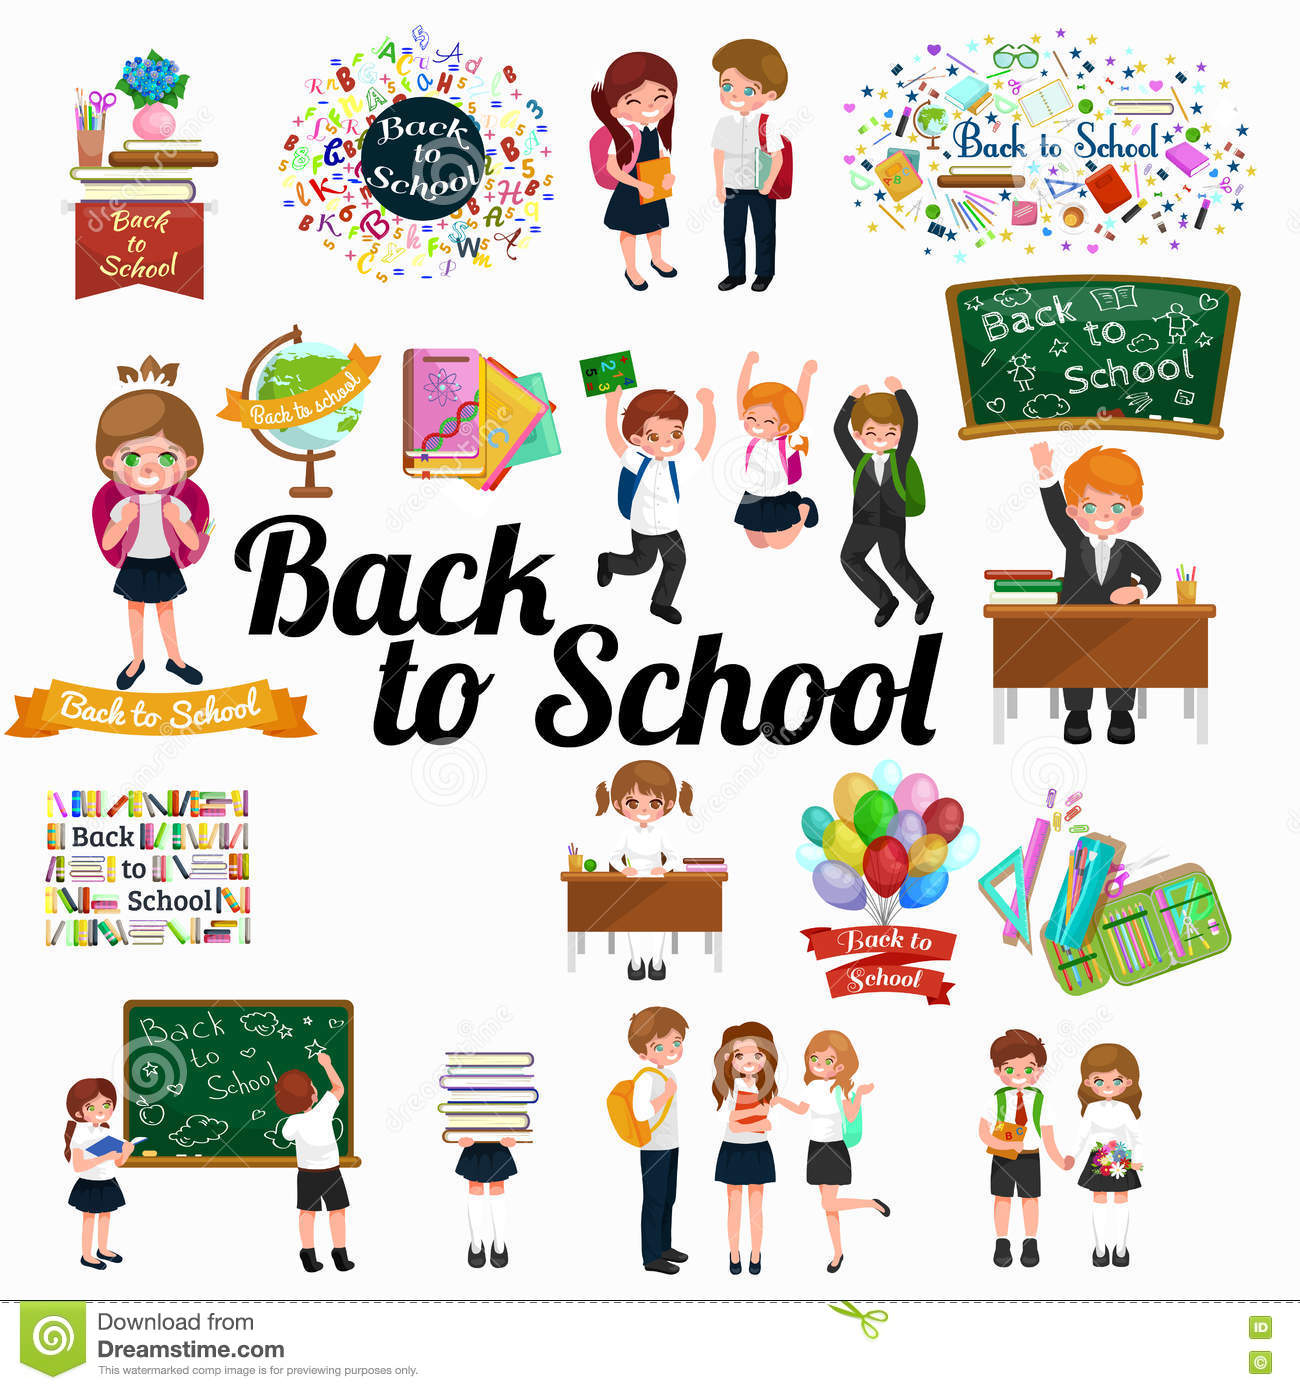 Back to school and children education concept background